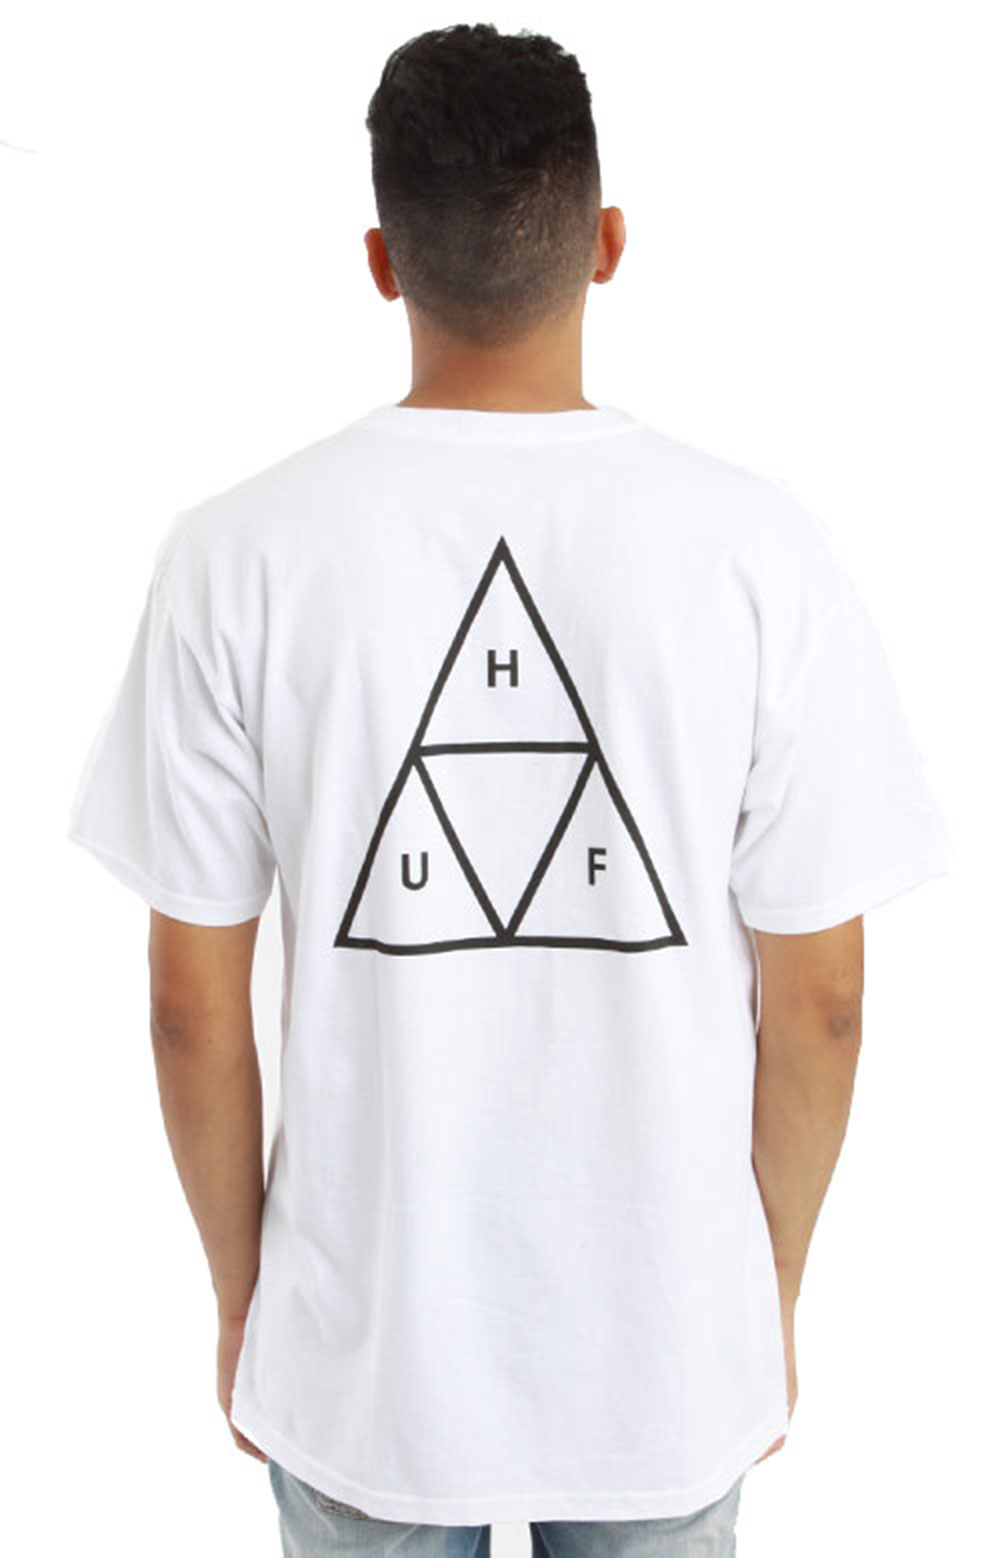 Triple Triangle T-Shirt - White/Black